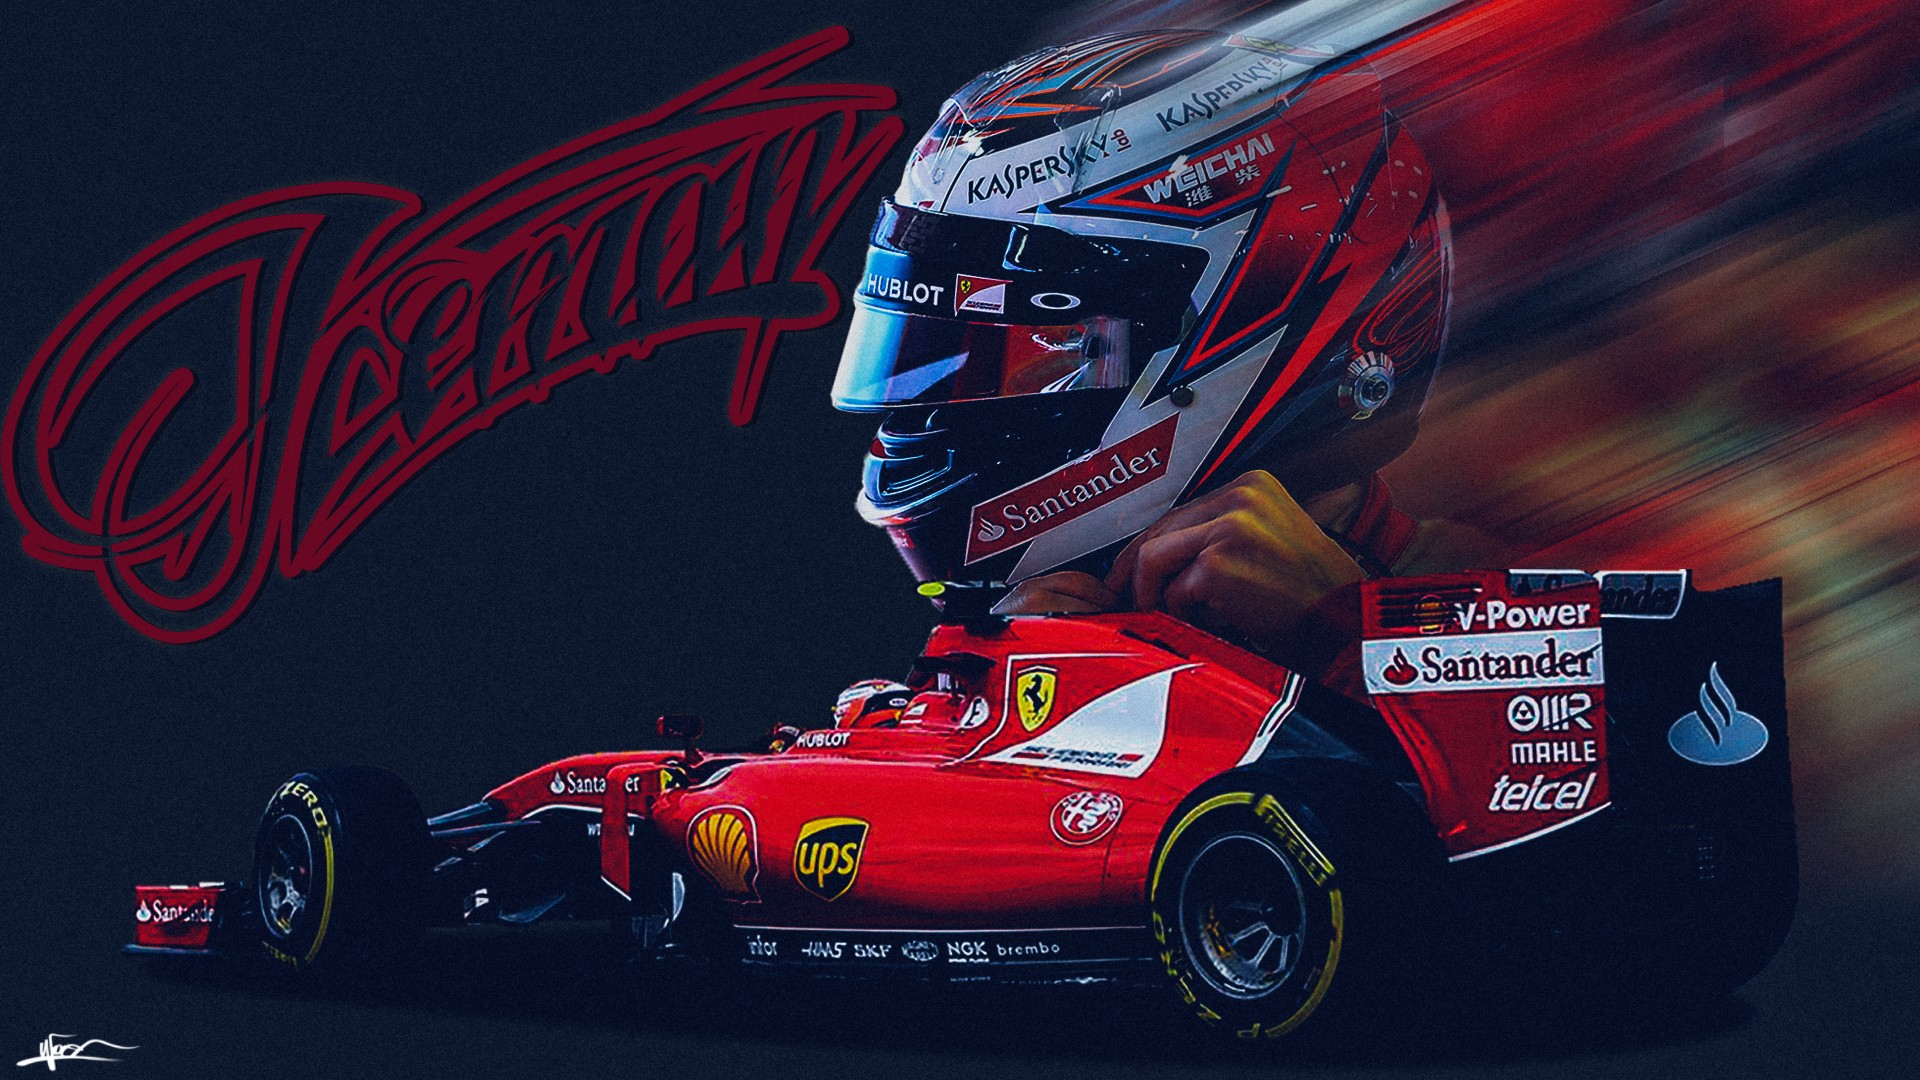 New 3d Abstract Wallpapers Kimi Raikkonen Kimi Raikkonen Ferrari Scuderia Ferrari